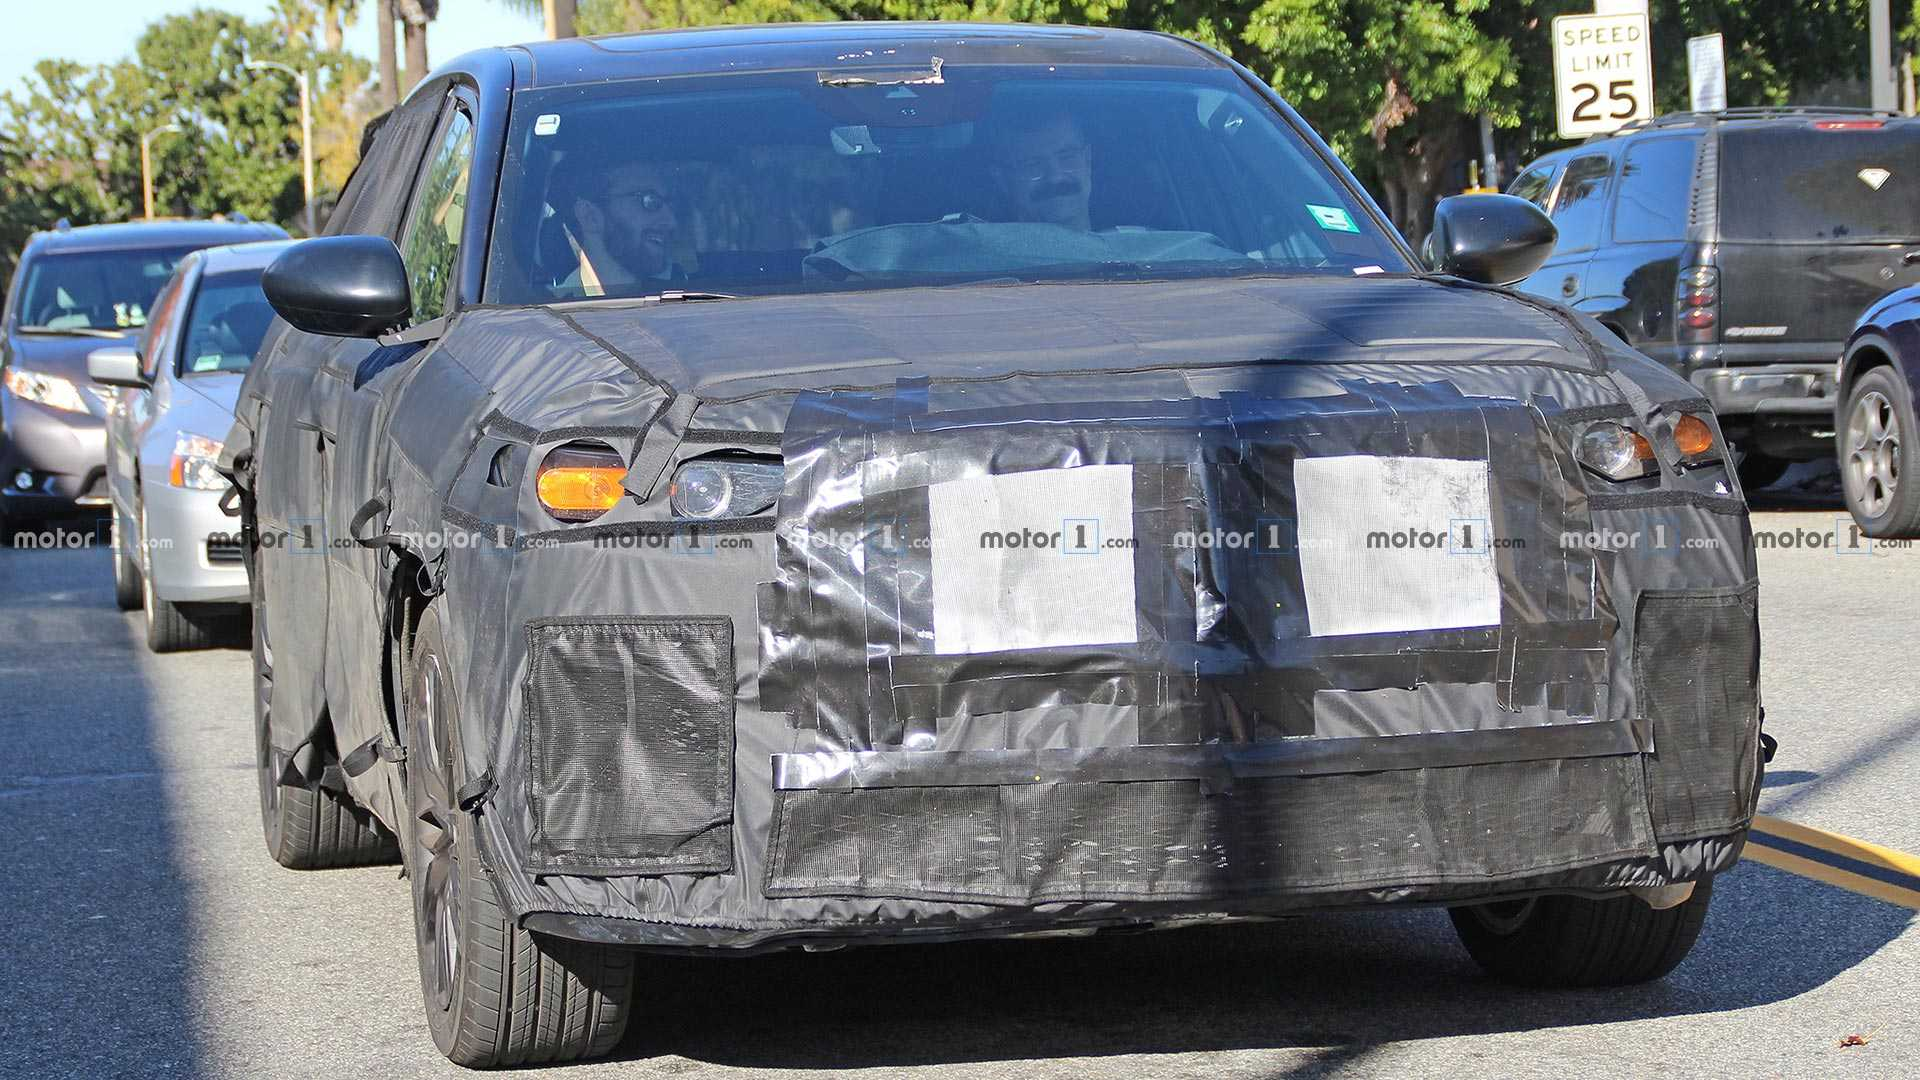 78 Gallery of Acura Mdx 2020 Spy Shots Overview for Acura Mdx 2020 Spy Shots